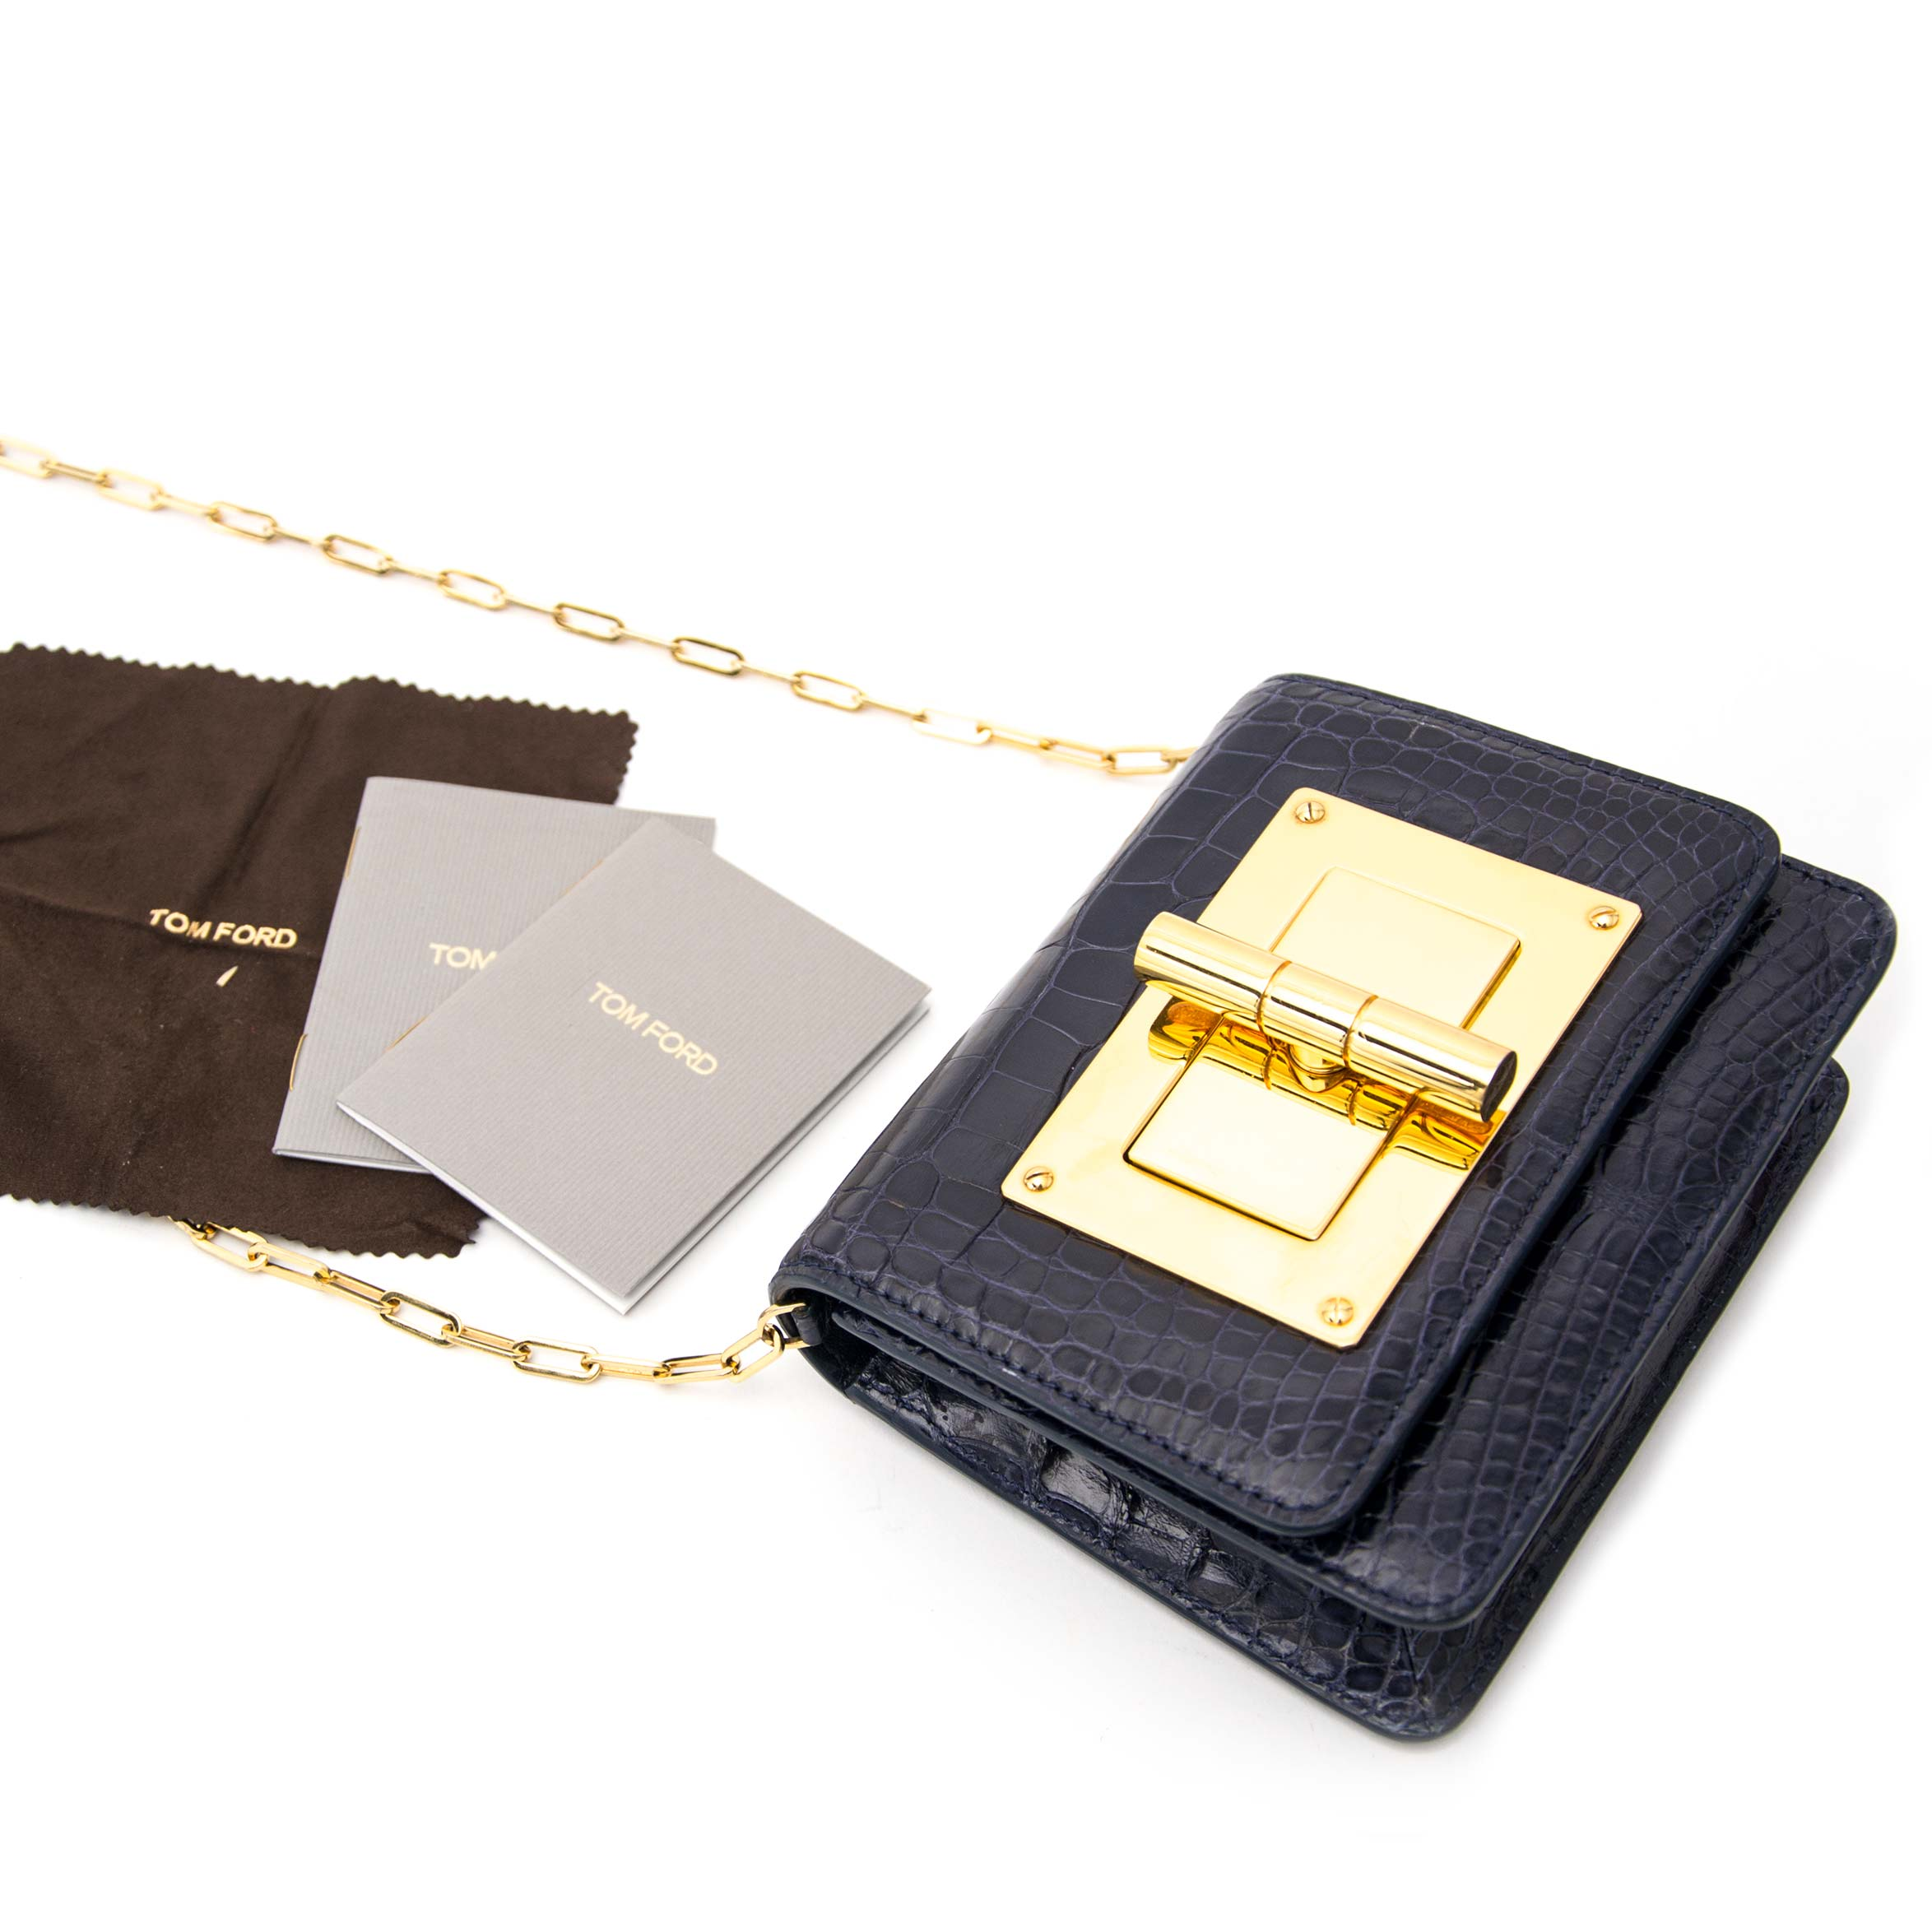 Buy safe and online Tom Ford Natalia at LabelLov online for right price